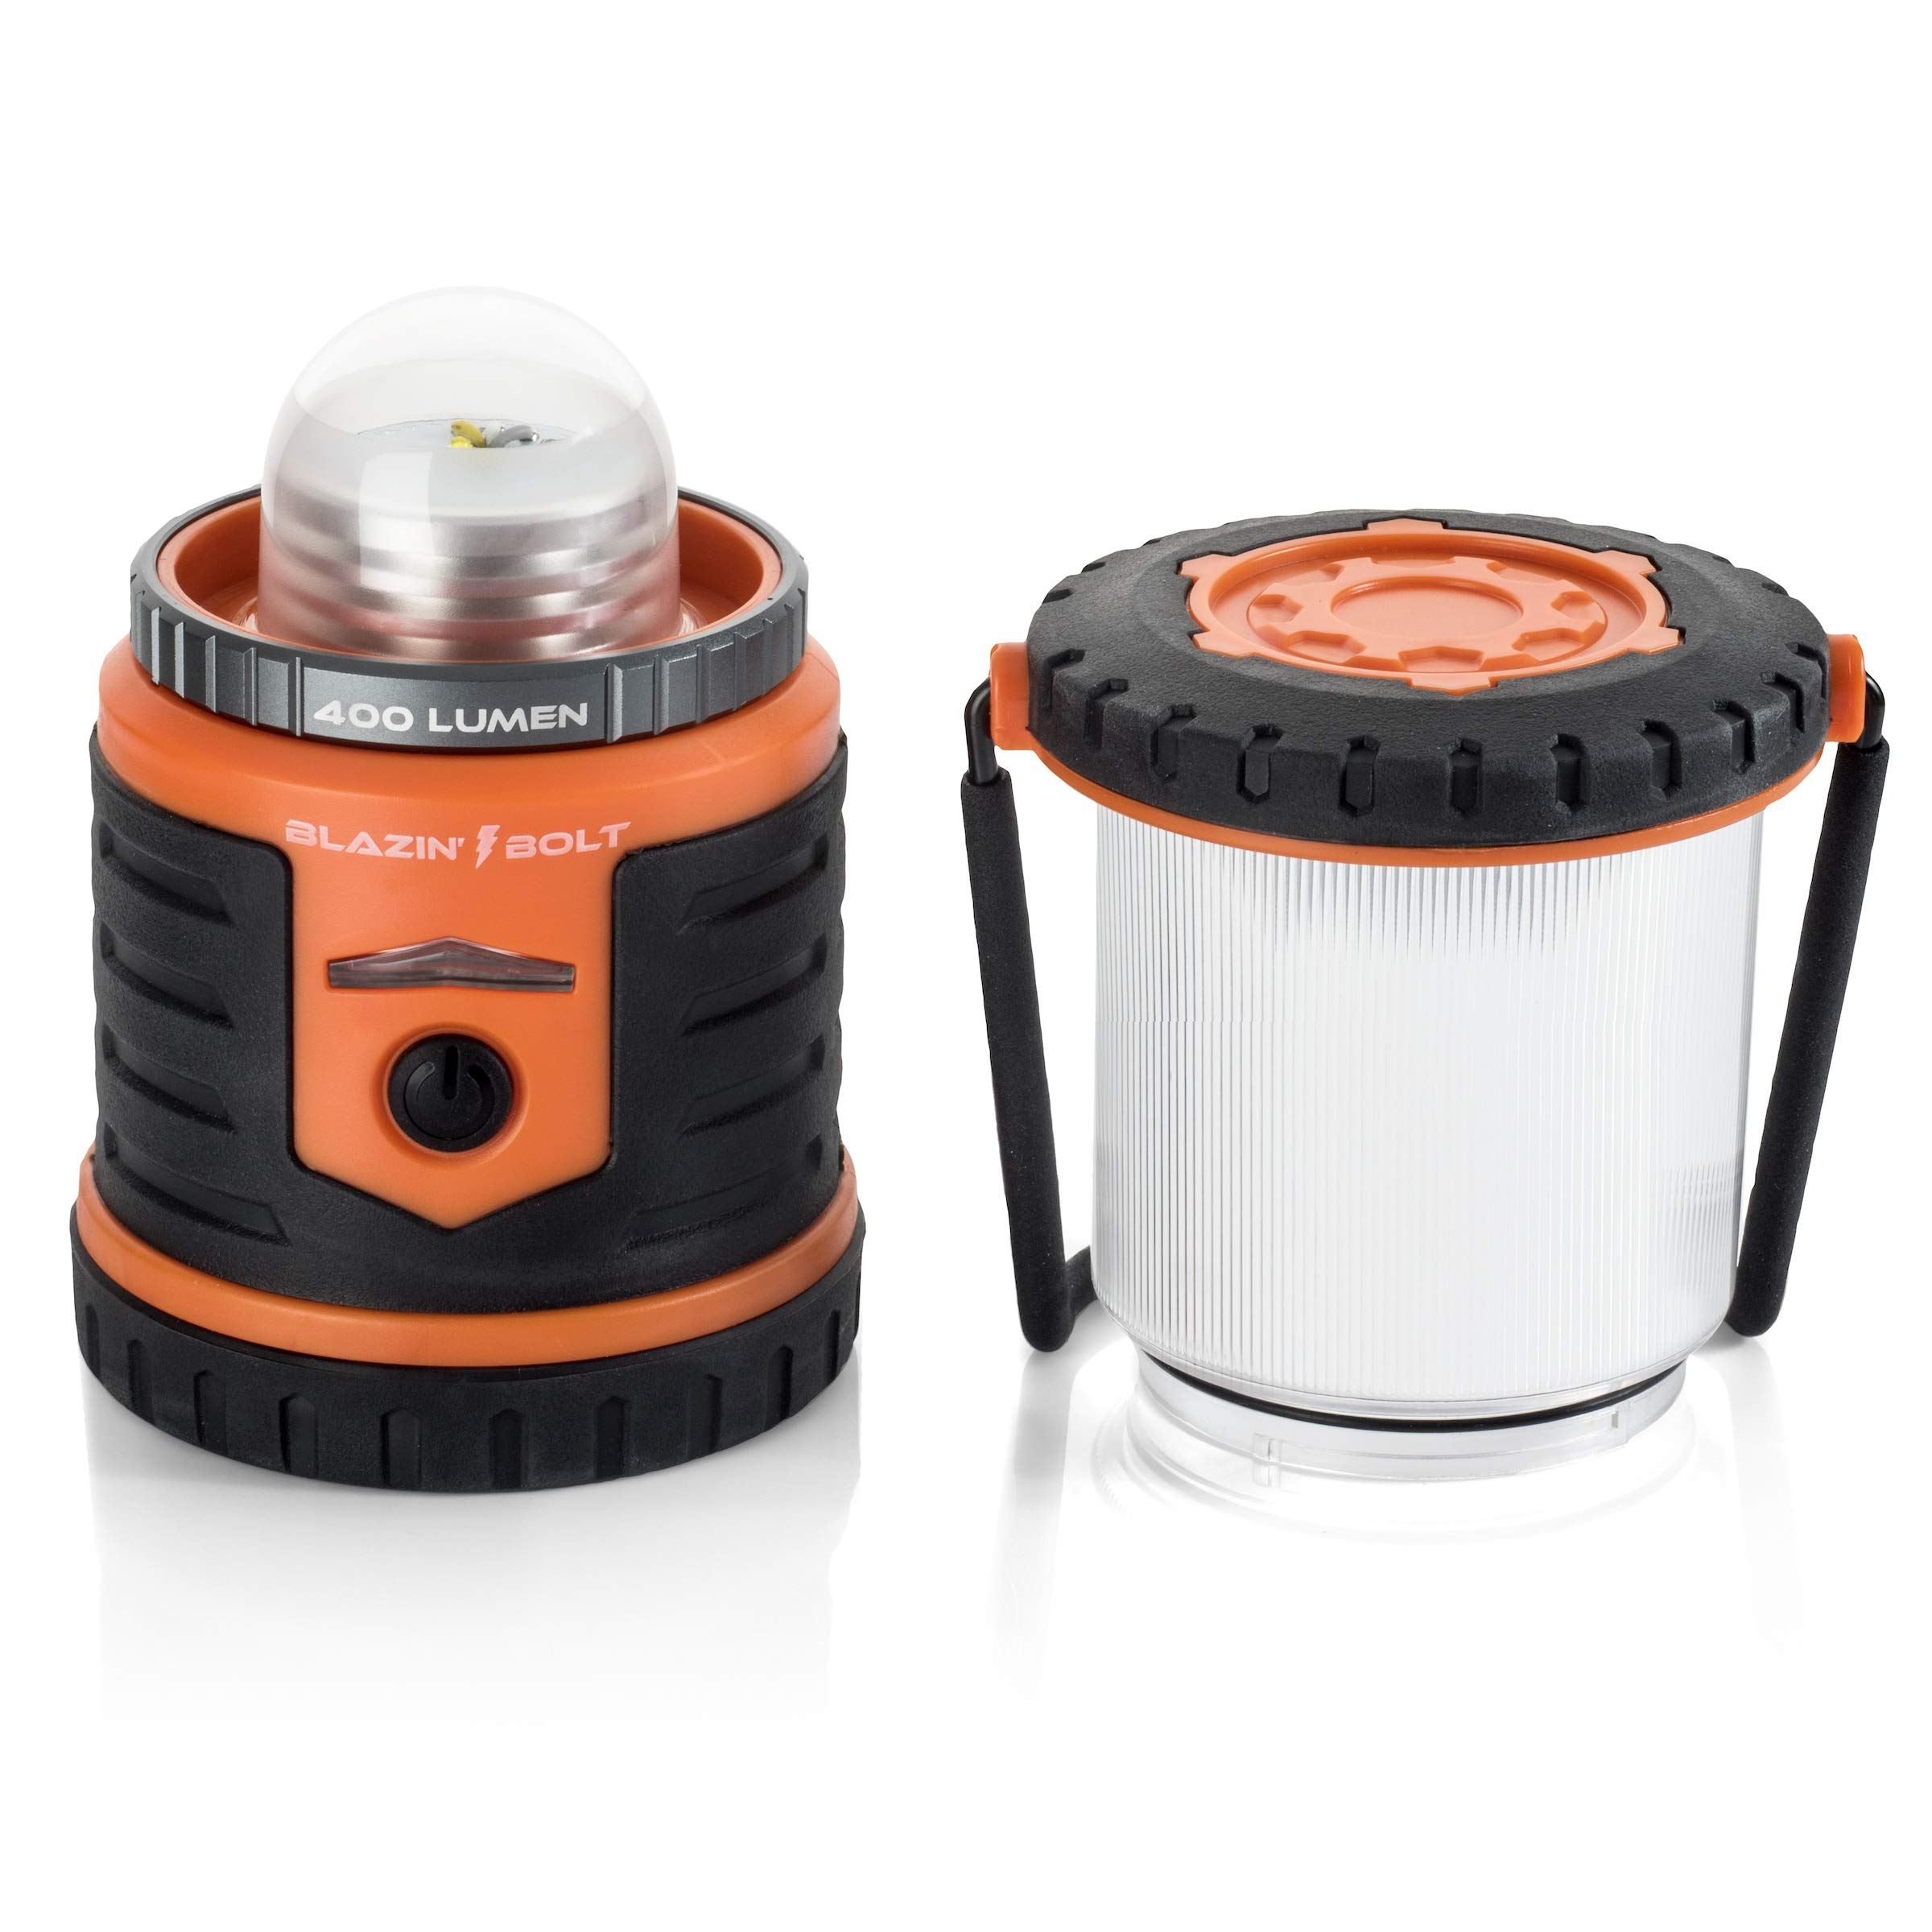 Brightest Rechargeable Lantern LED | Hurricane, Blackout, Storm | Power Bank Light | 400 Hour Runtime (Orange) by Blazin' Bison (Image #3)